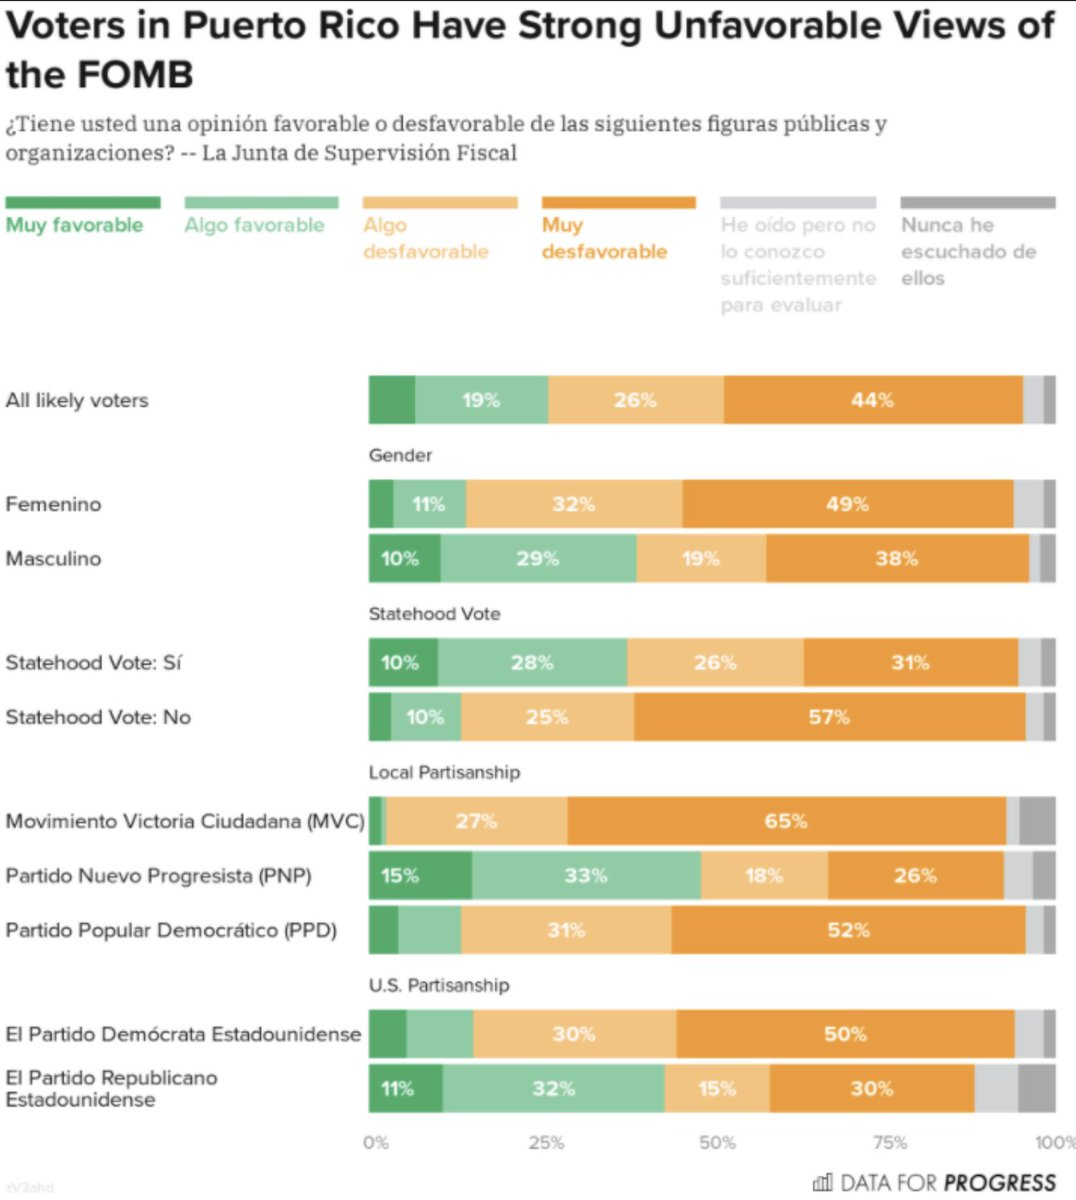 Abolish la Junta? New @dataforprogress poll shows that the @FOMBPR is not favored by the majority of those surveyed. The people of Puerto Rico need power to make decisions on their future. Not Wall Street. #abolishLaJunta